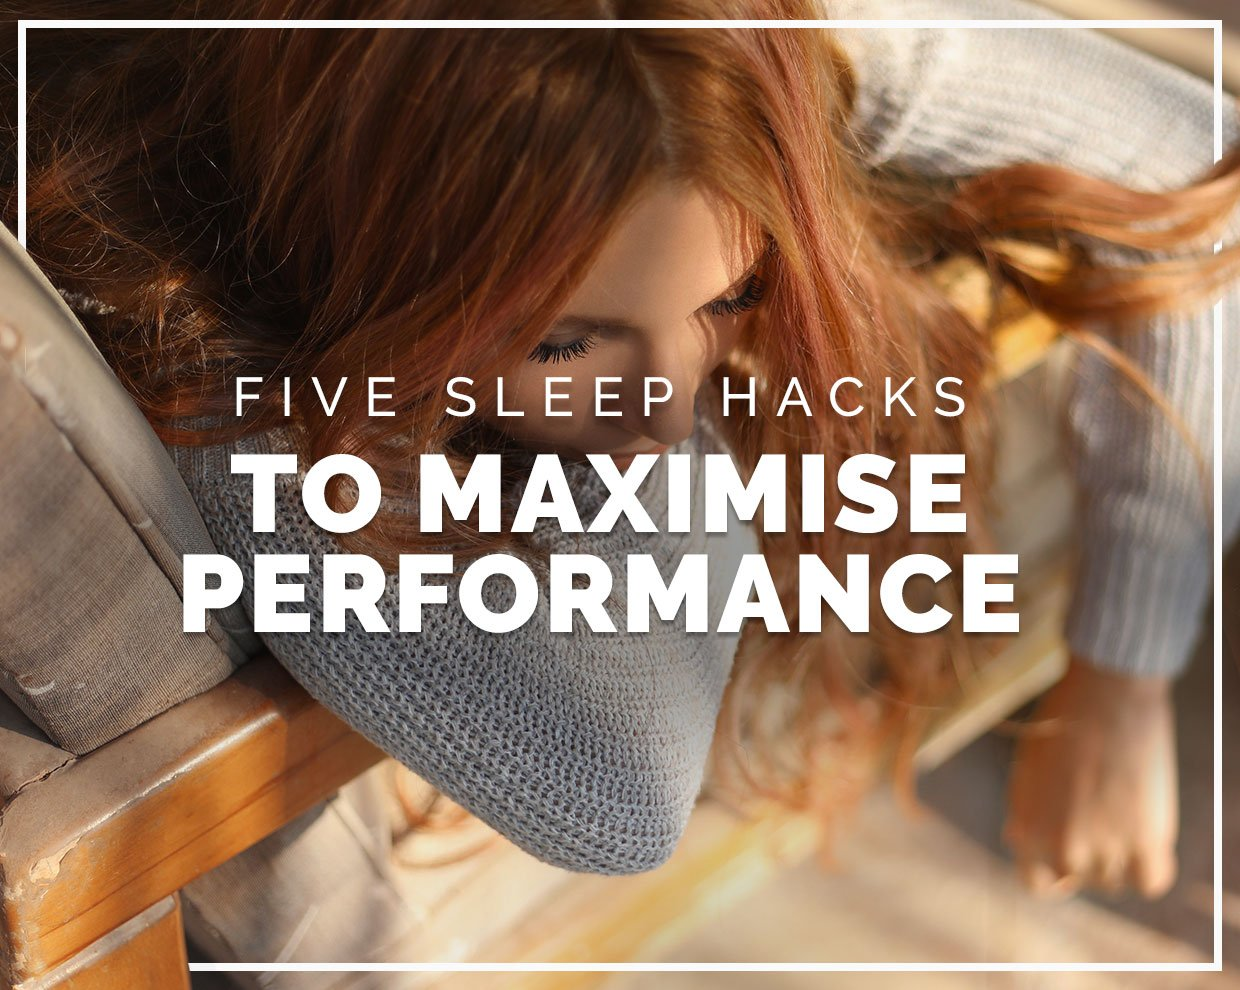 Five sleep hacks to maximise performance